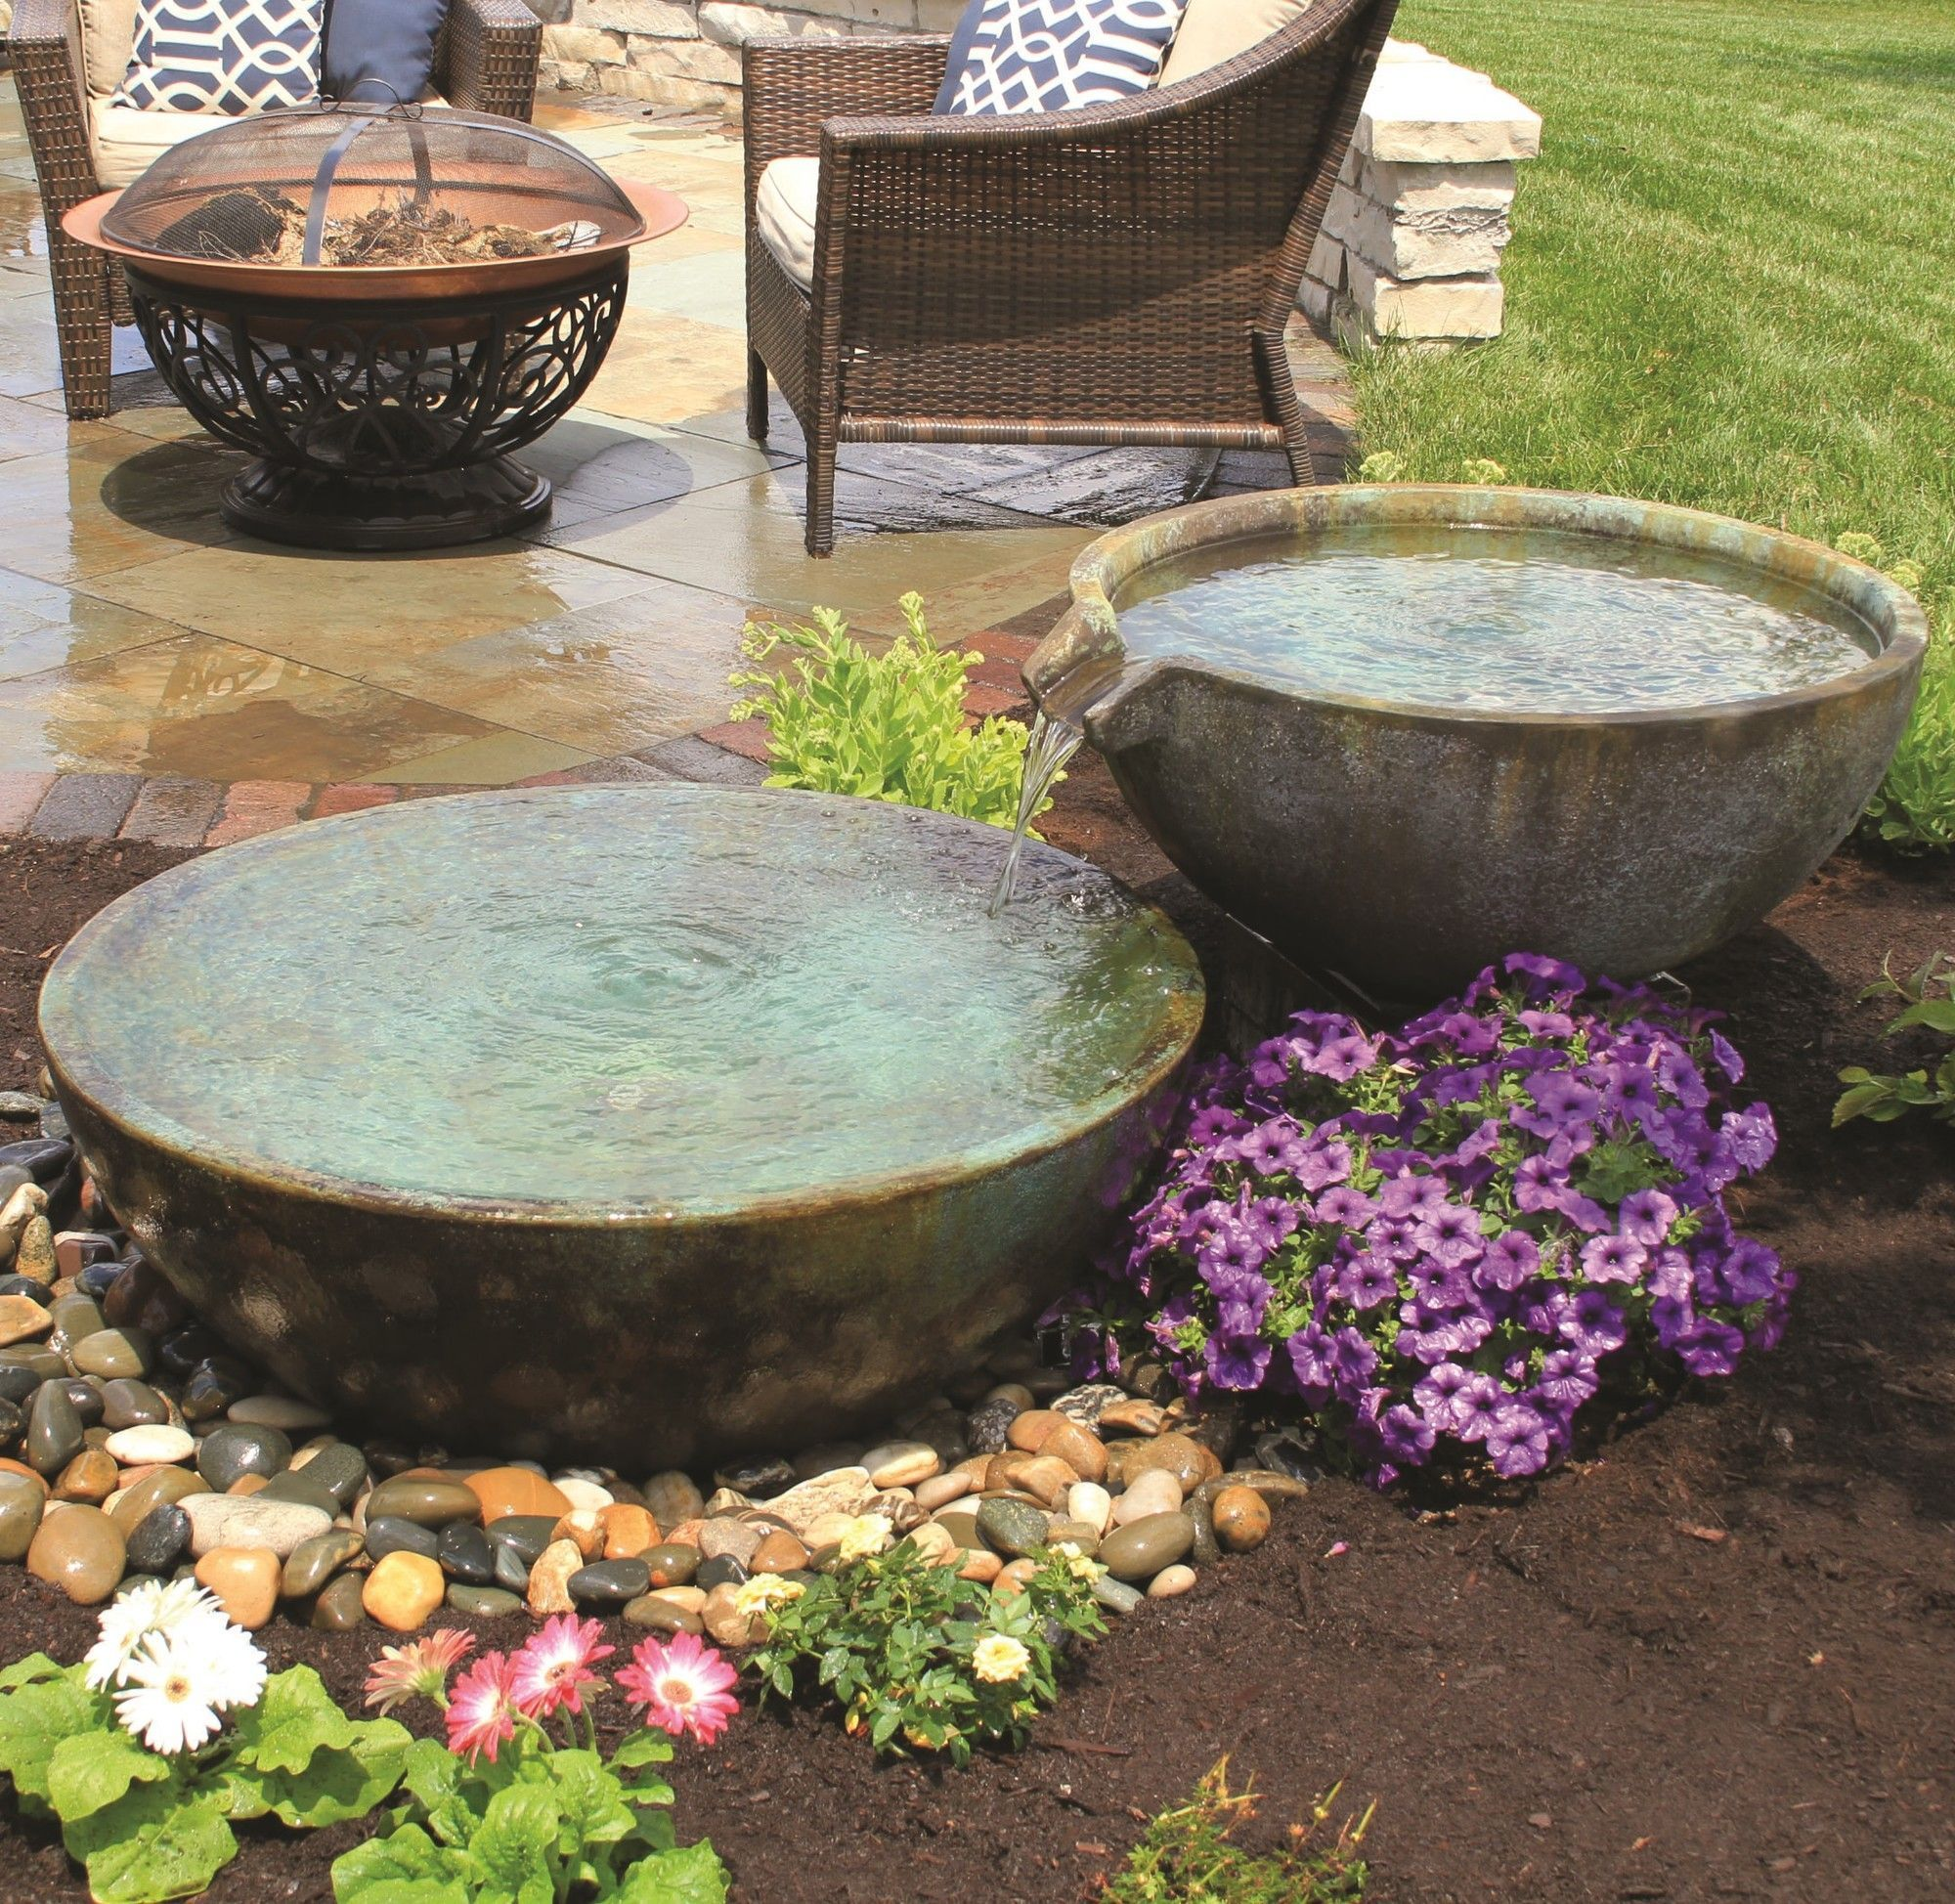 Spillway Basin Garden Pond Design Water Features In The Garden Landscaping With Fountains